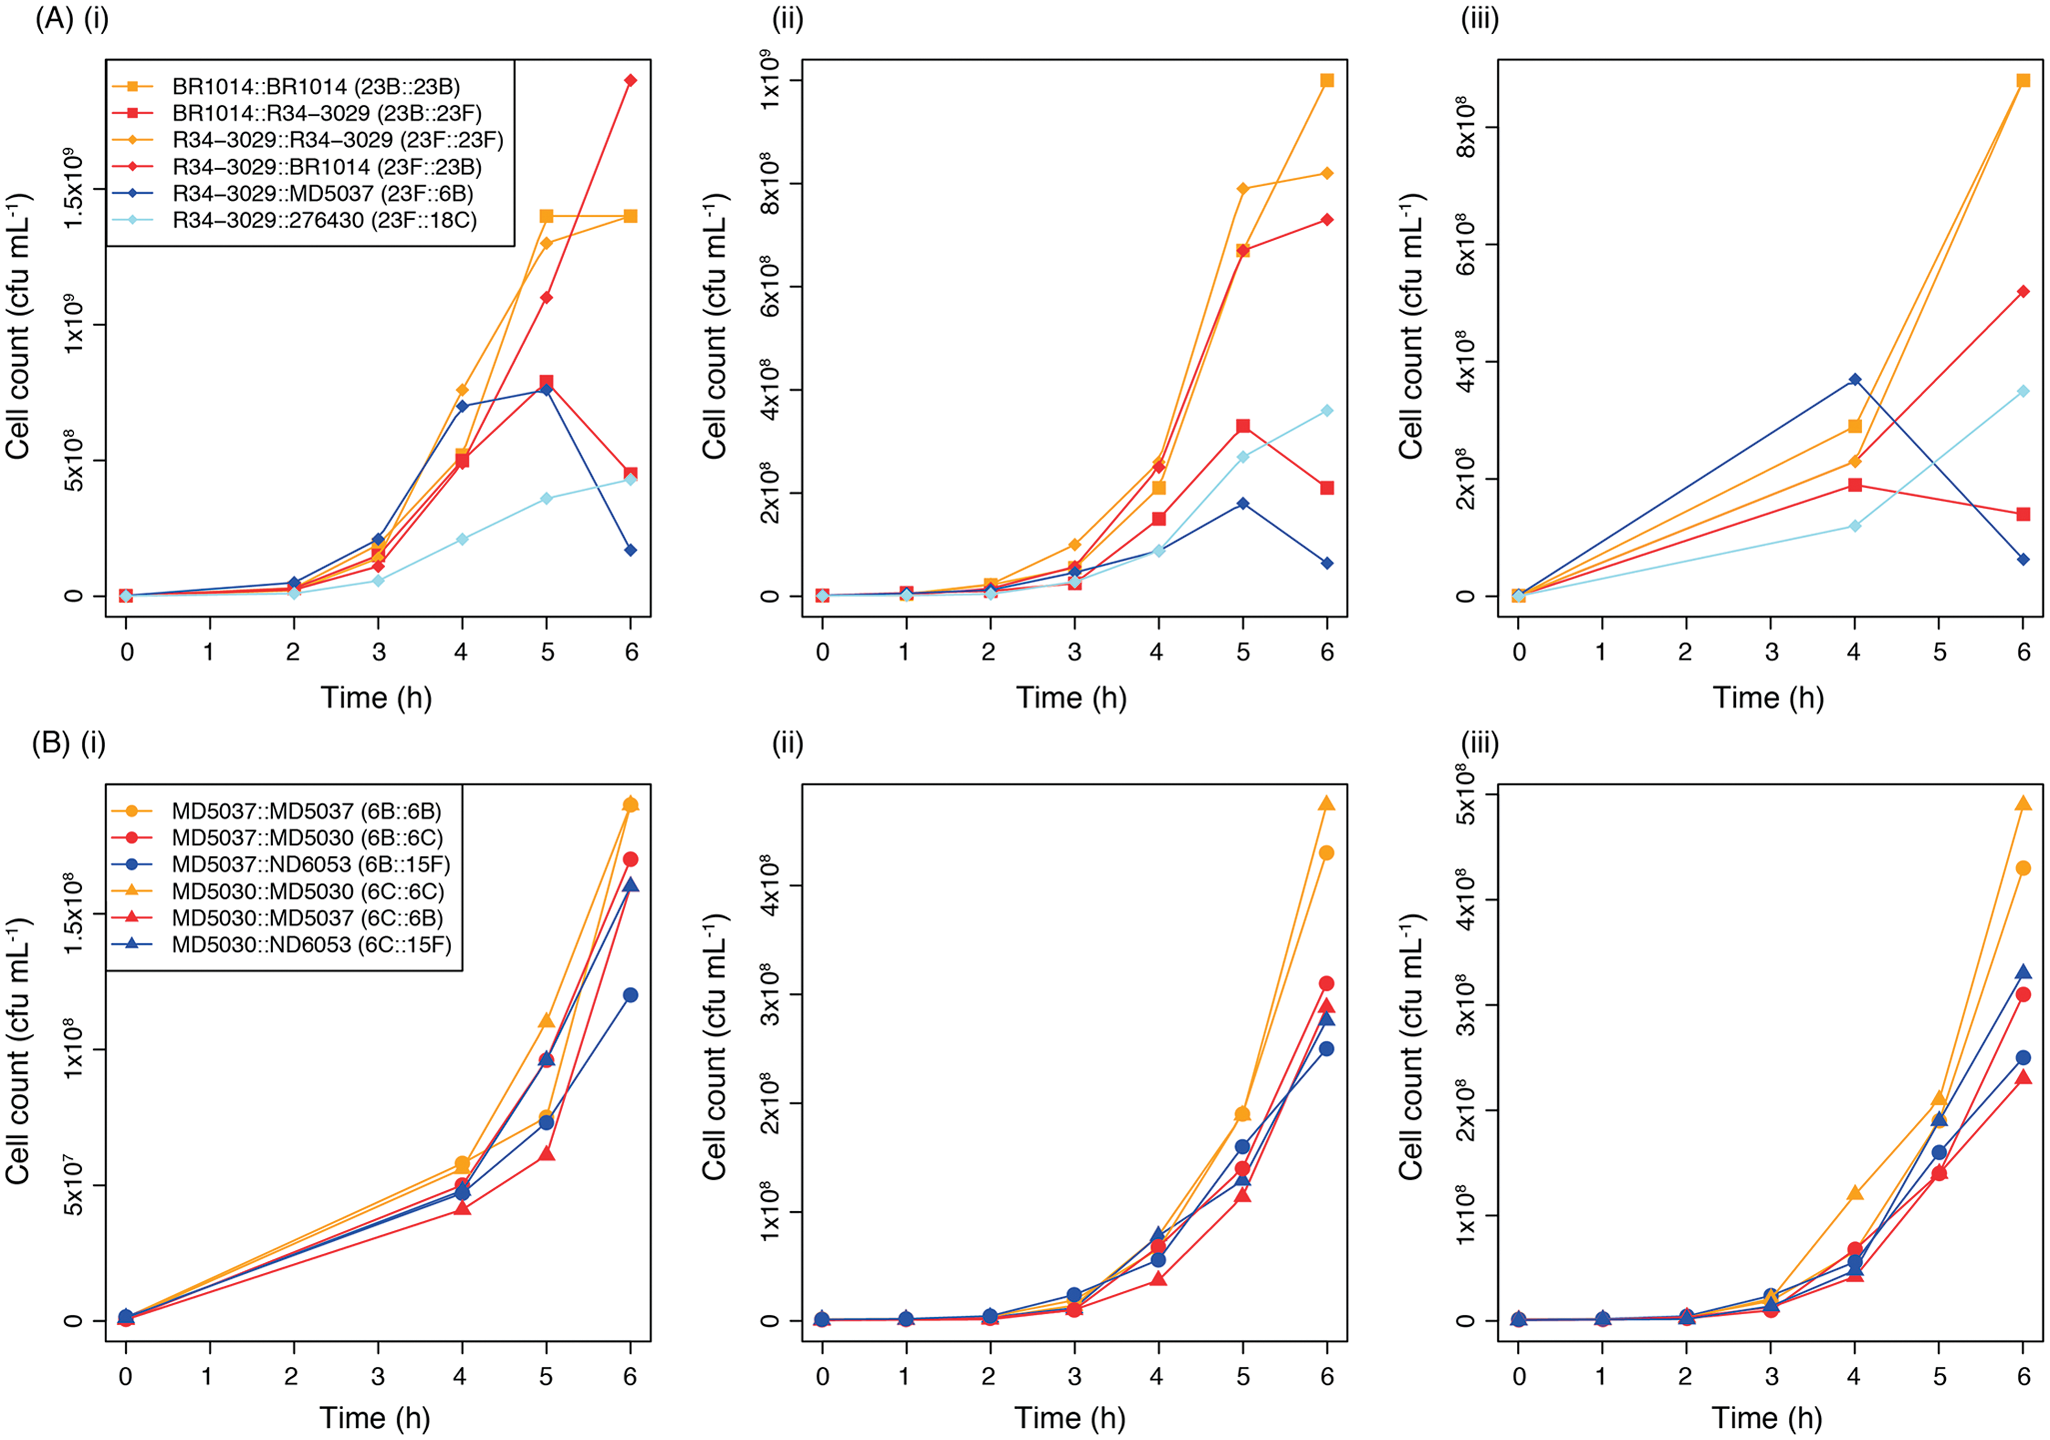 Growth curves comparing the fitness of genetic backgrounds expressing different serotypes.